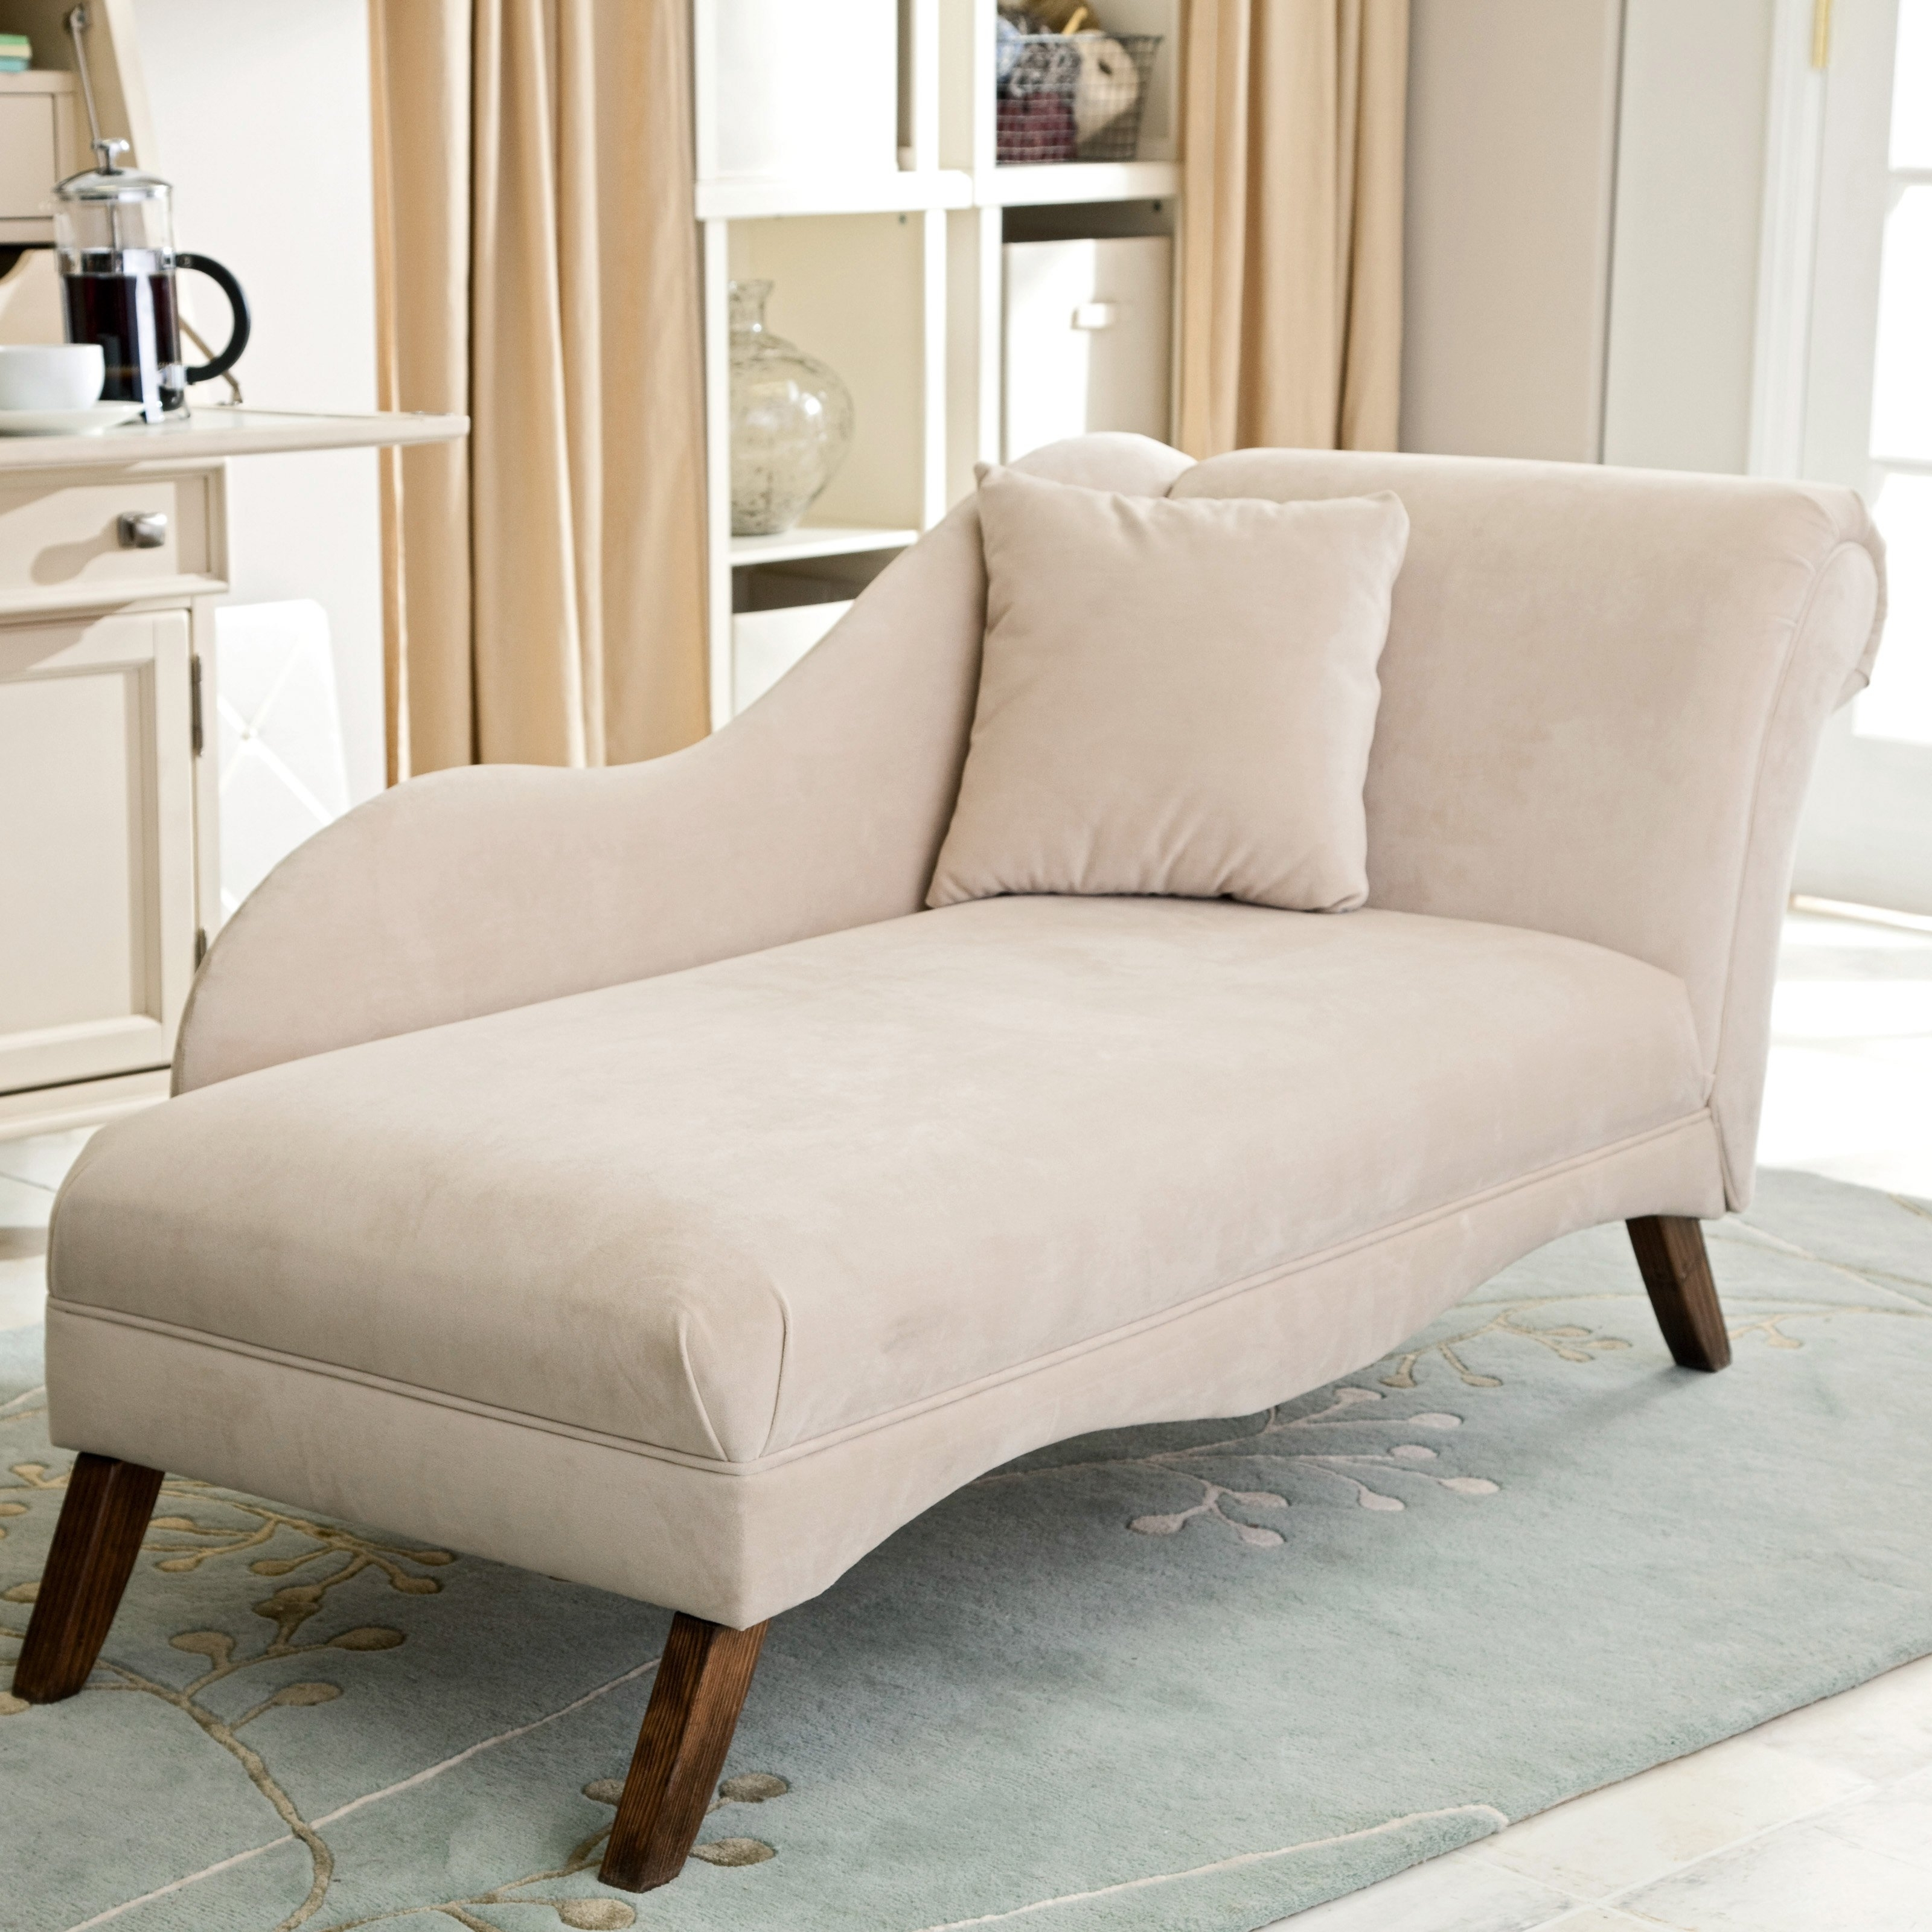 Indoor Chaise Lounge Chairs Regarding Famous Leather Chaise Lounge Chairs Indoors • Lounge Chairs Ideas (View 3 of 15)